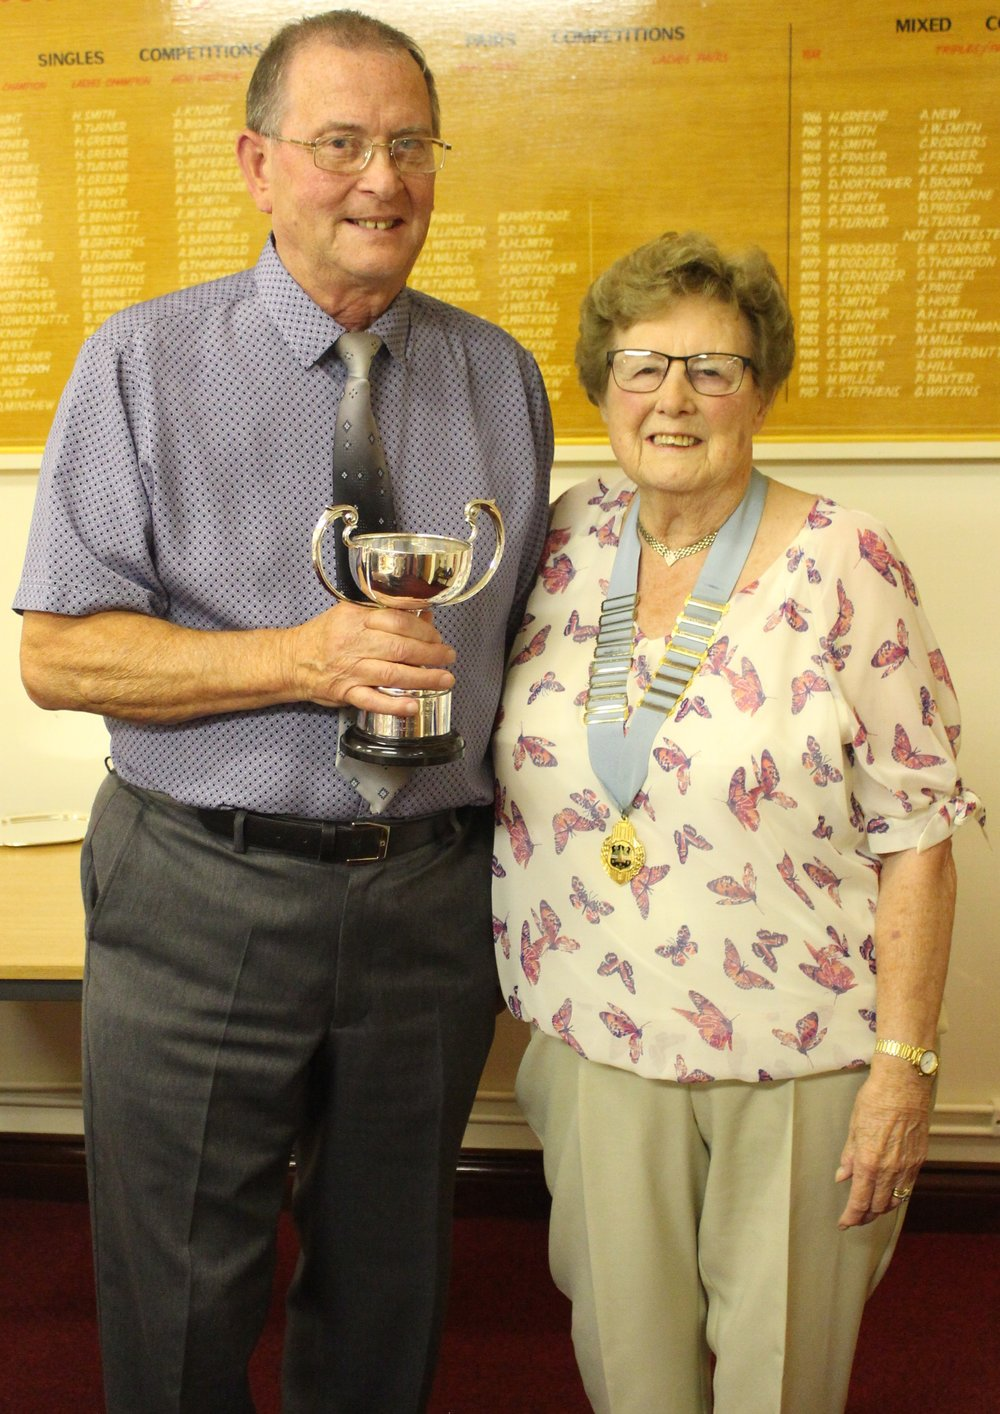 jeff perry gents champion for 2017. presented by margaret compton club president